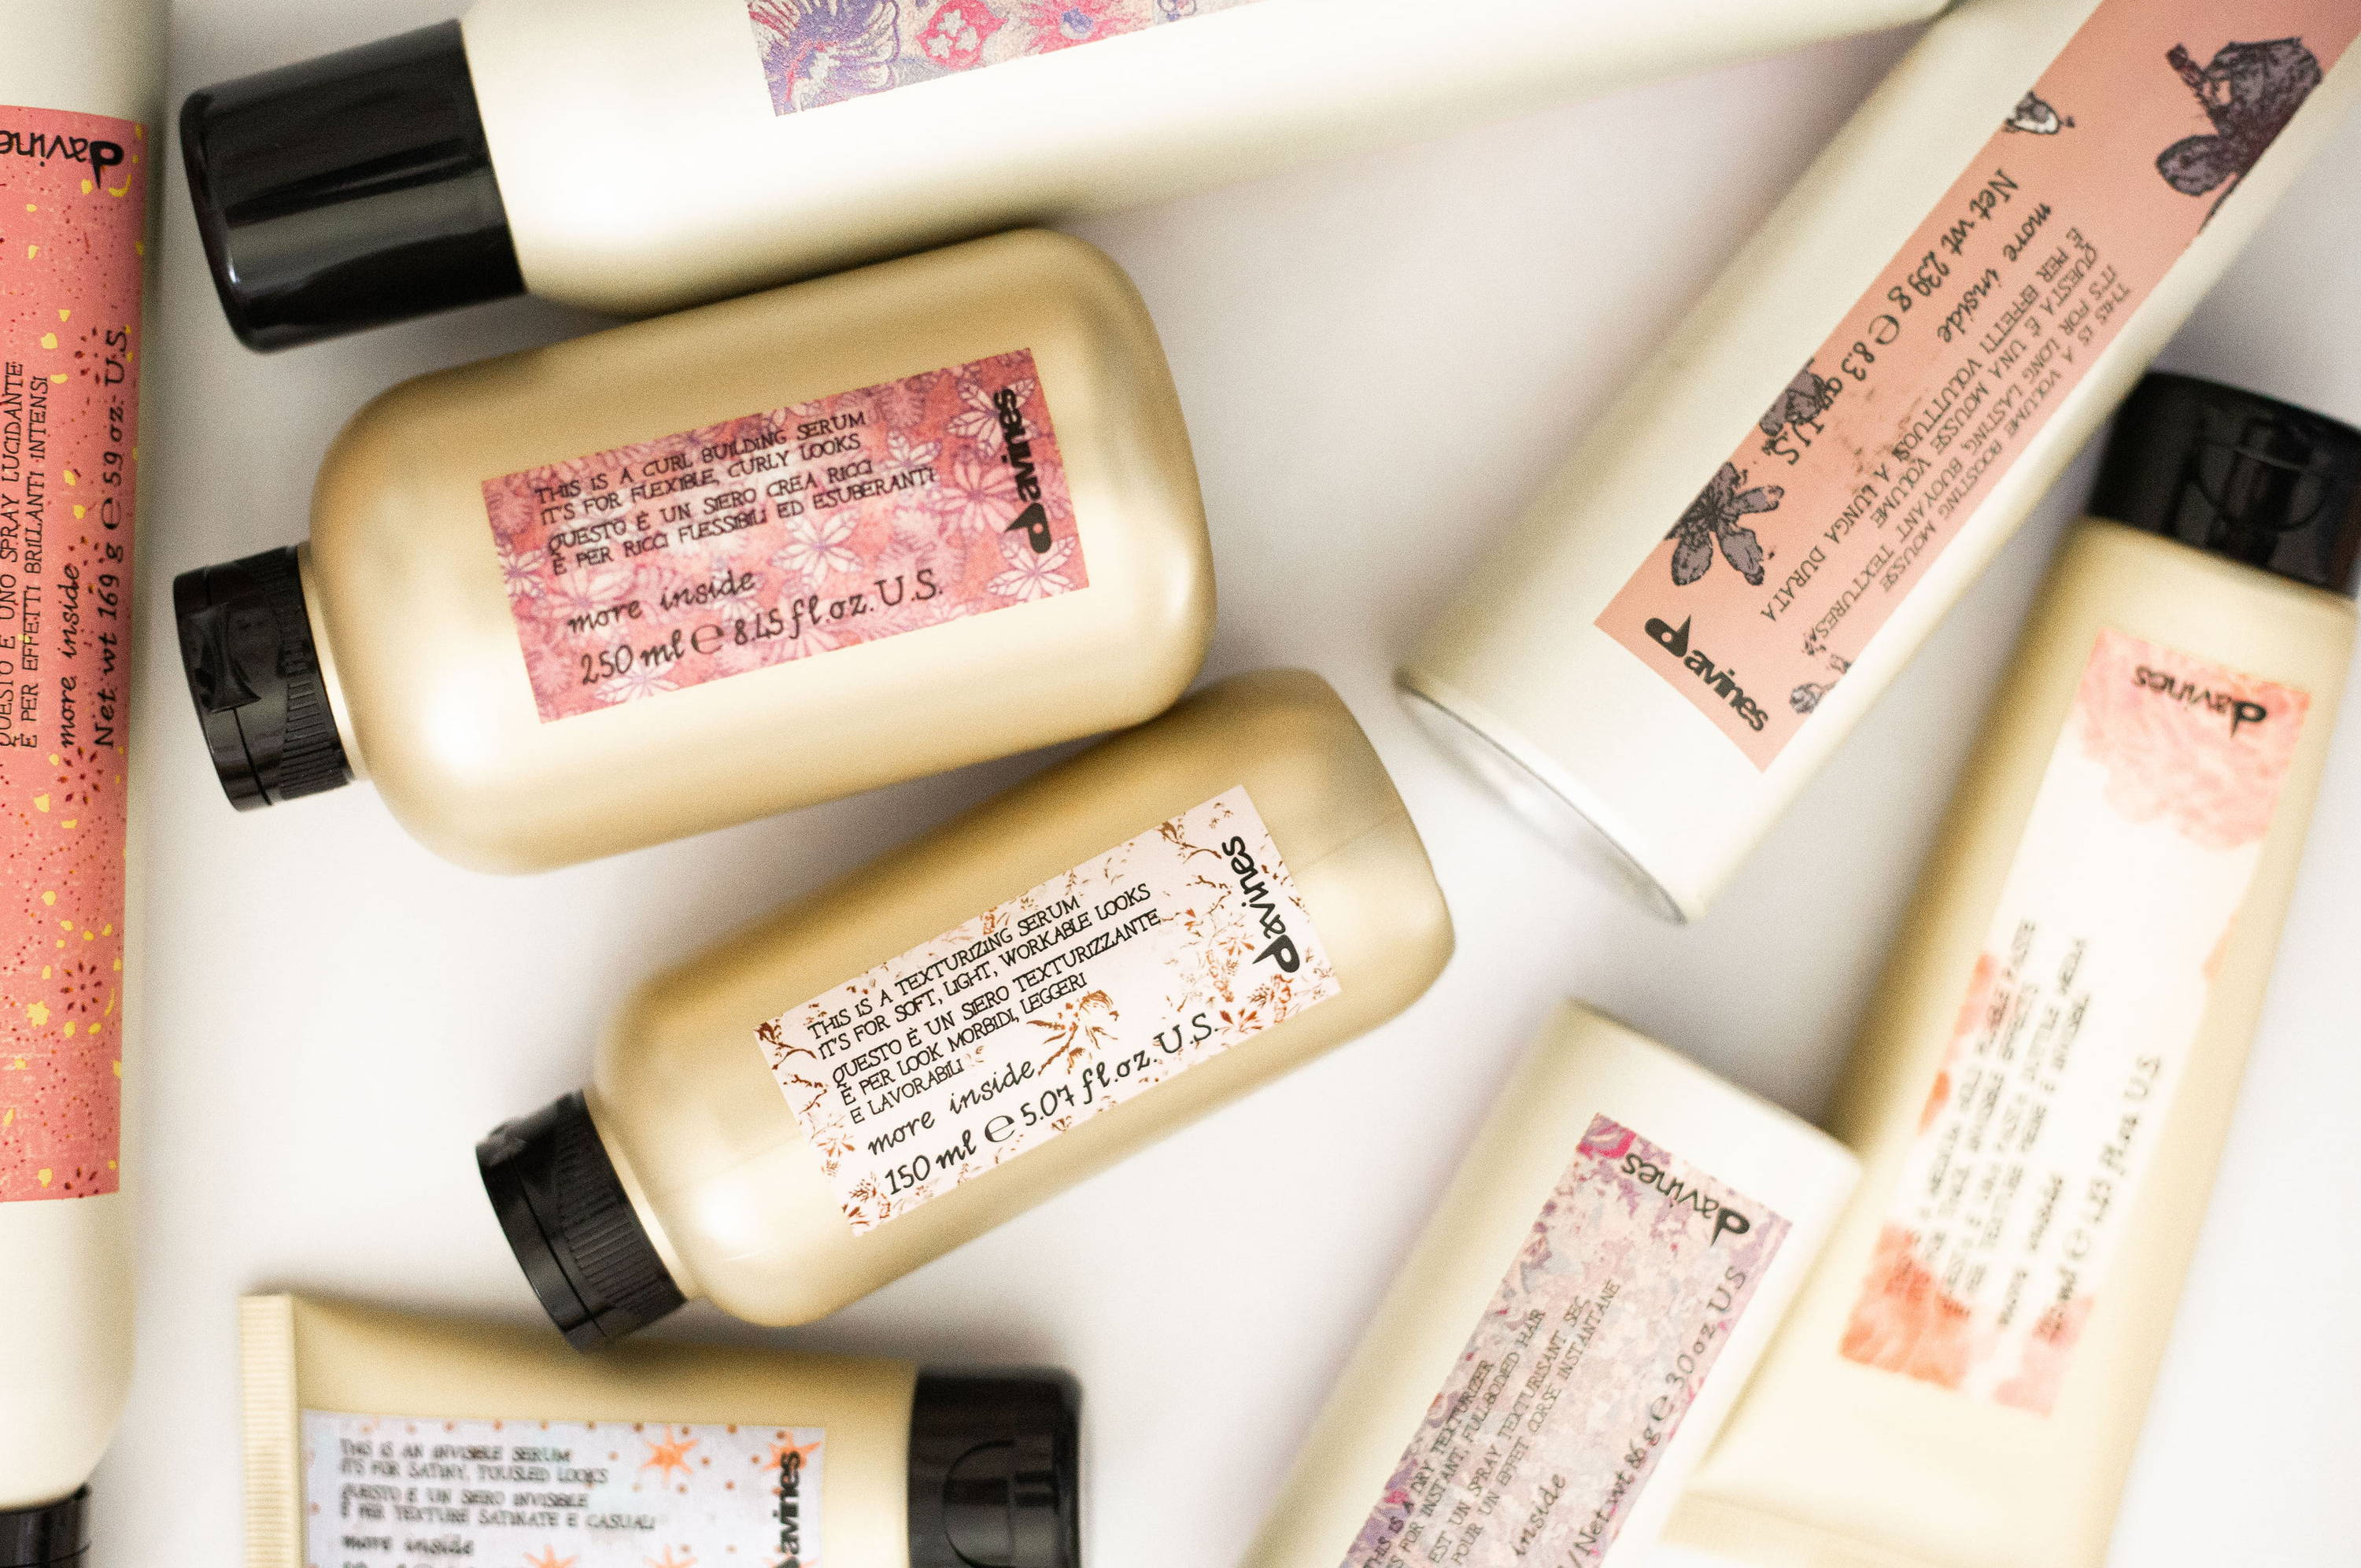 Davines curl building styling products